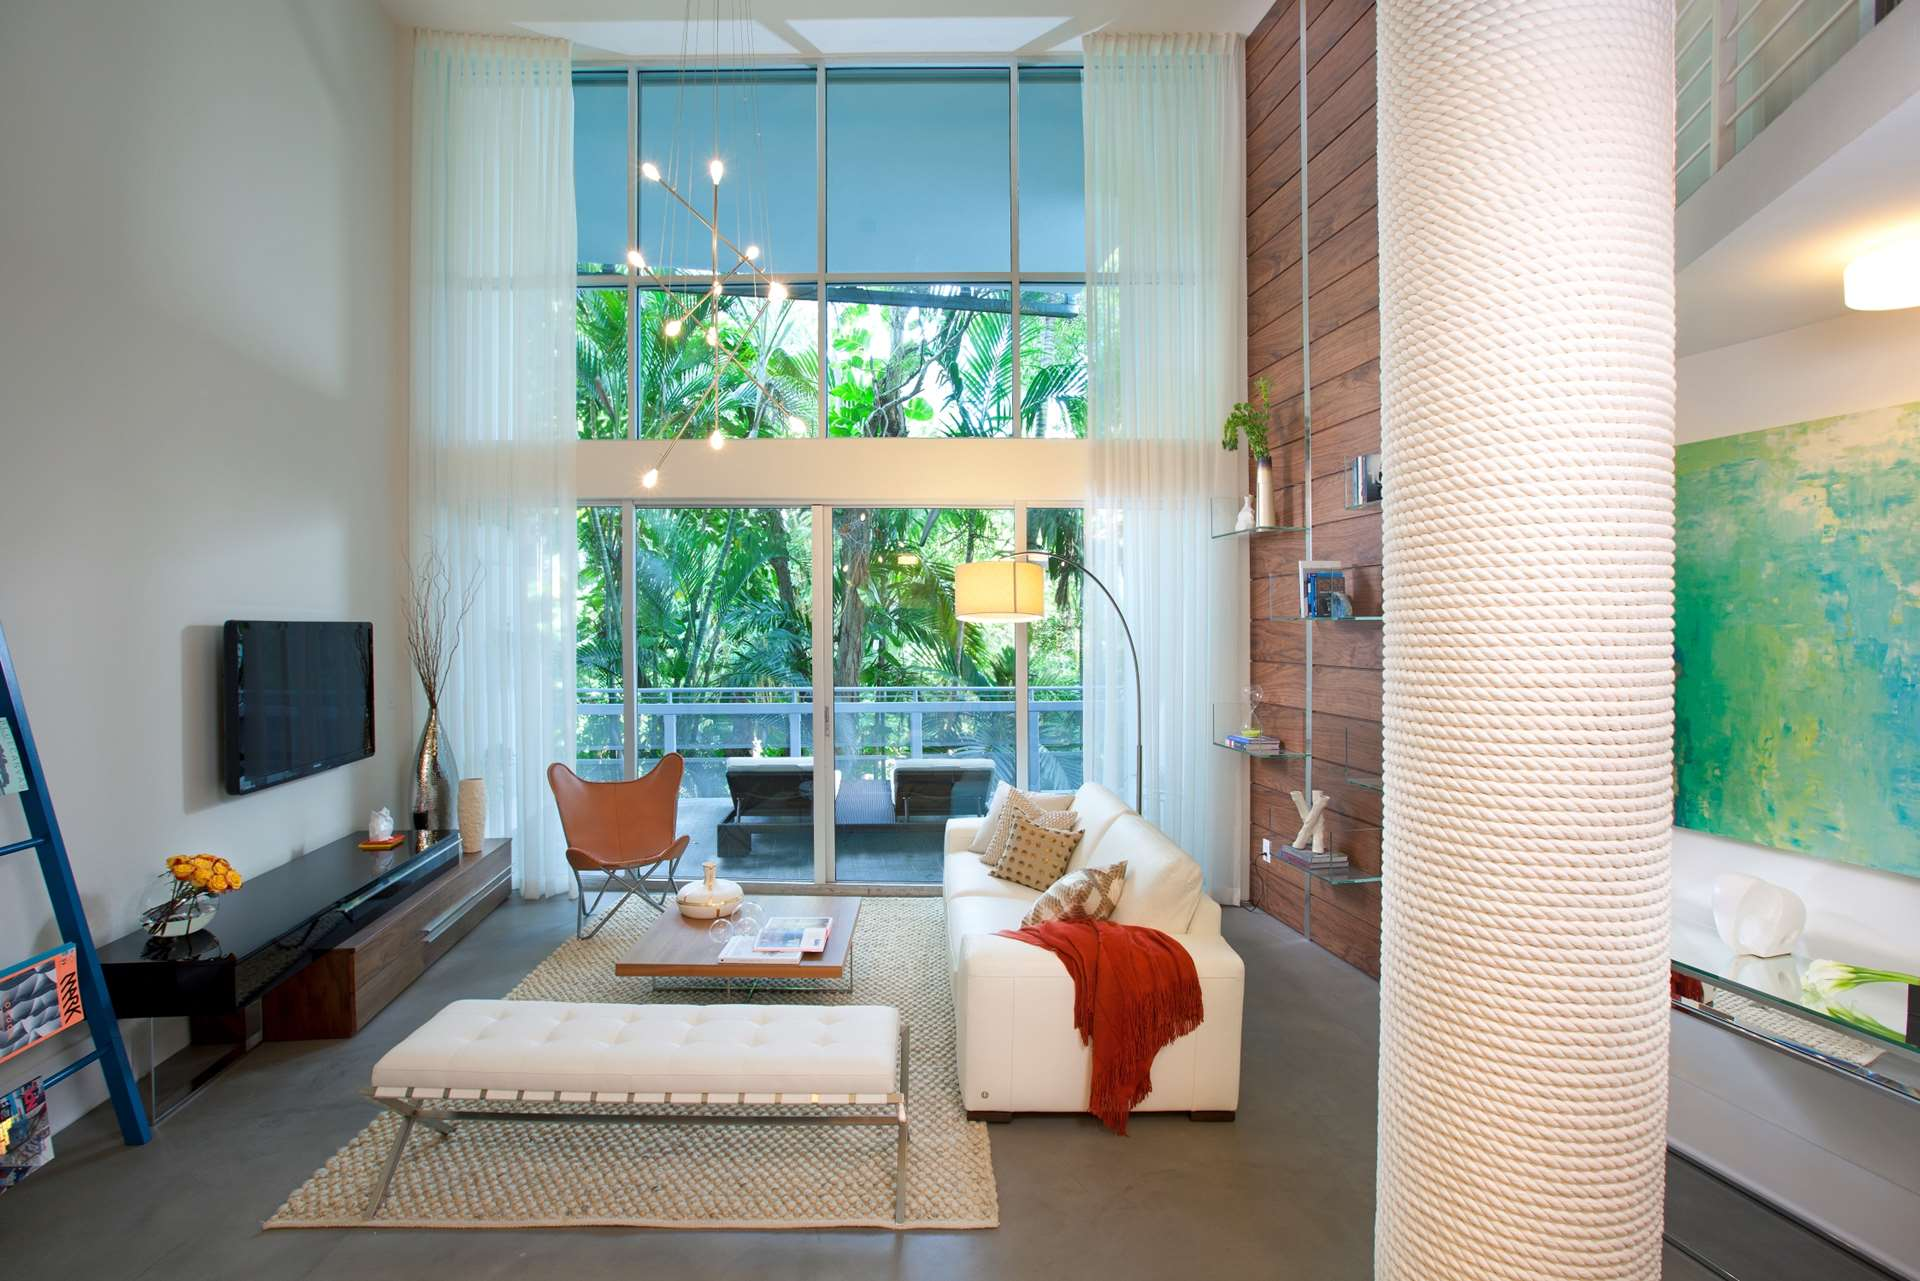 South beach chic dkor interiors for Interieur design blog